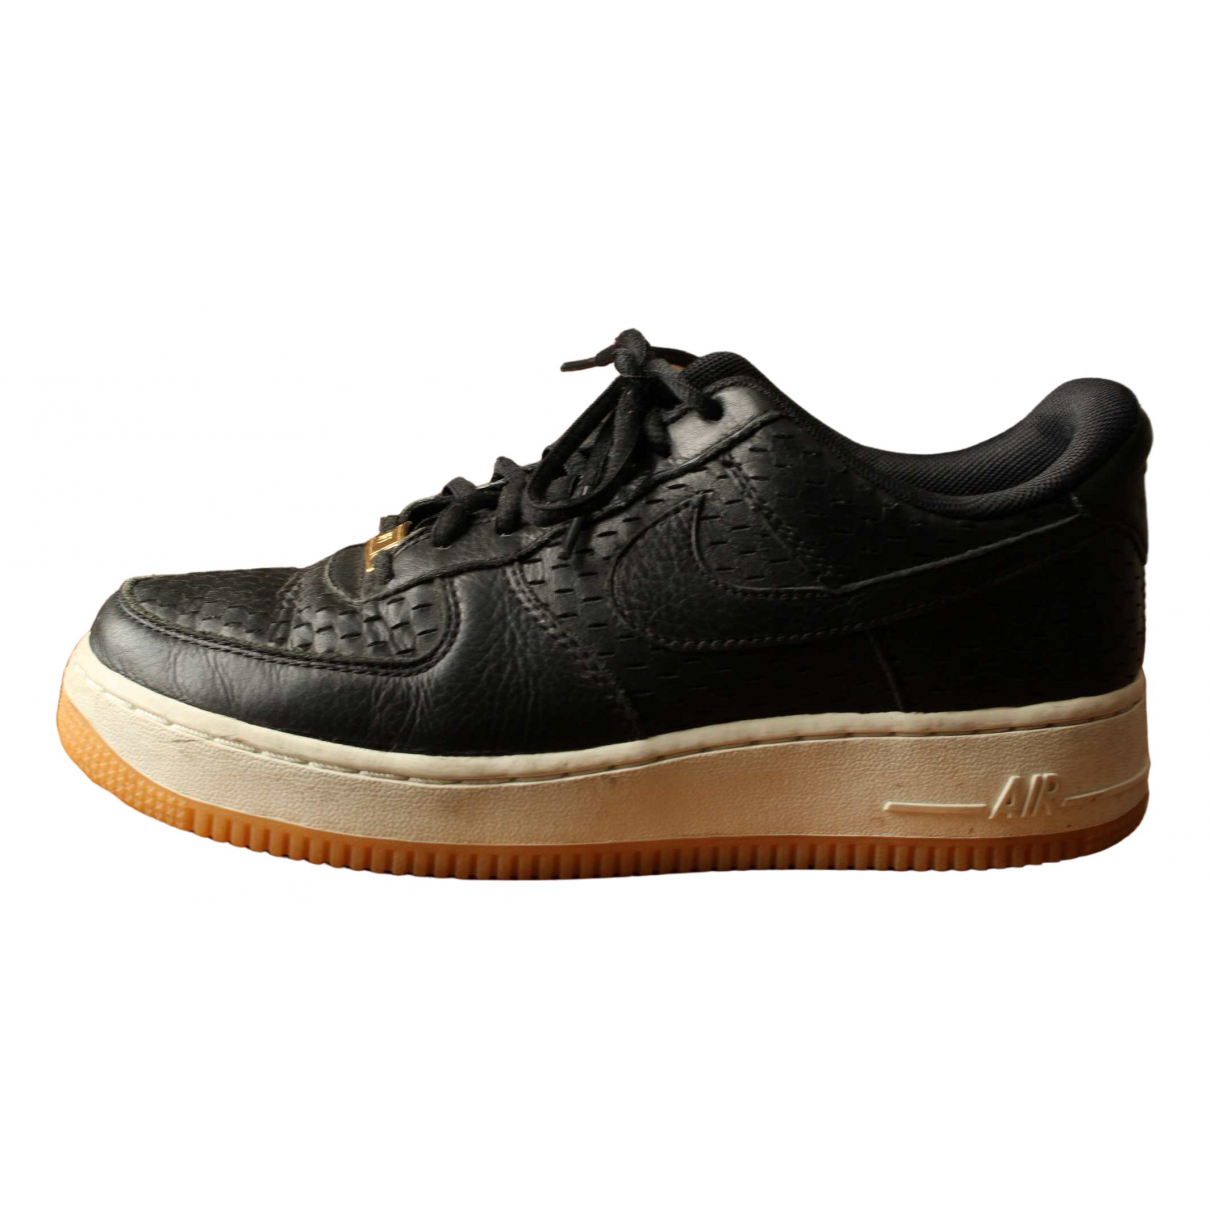 Nike Air Force 1 Black Leather Trainers for Women 38.5 EU